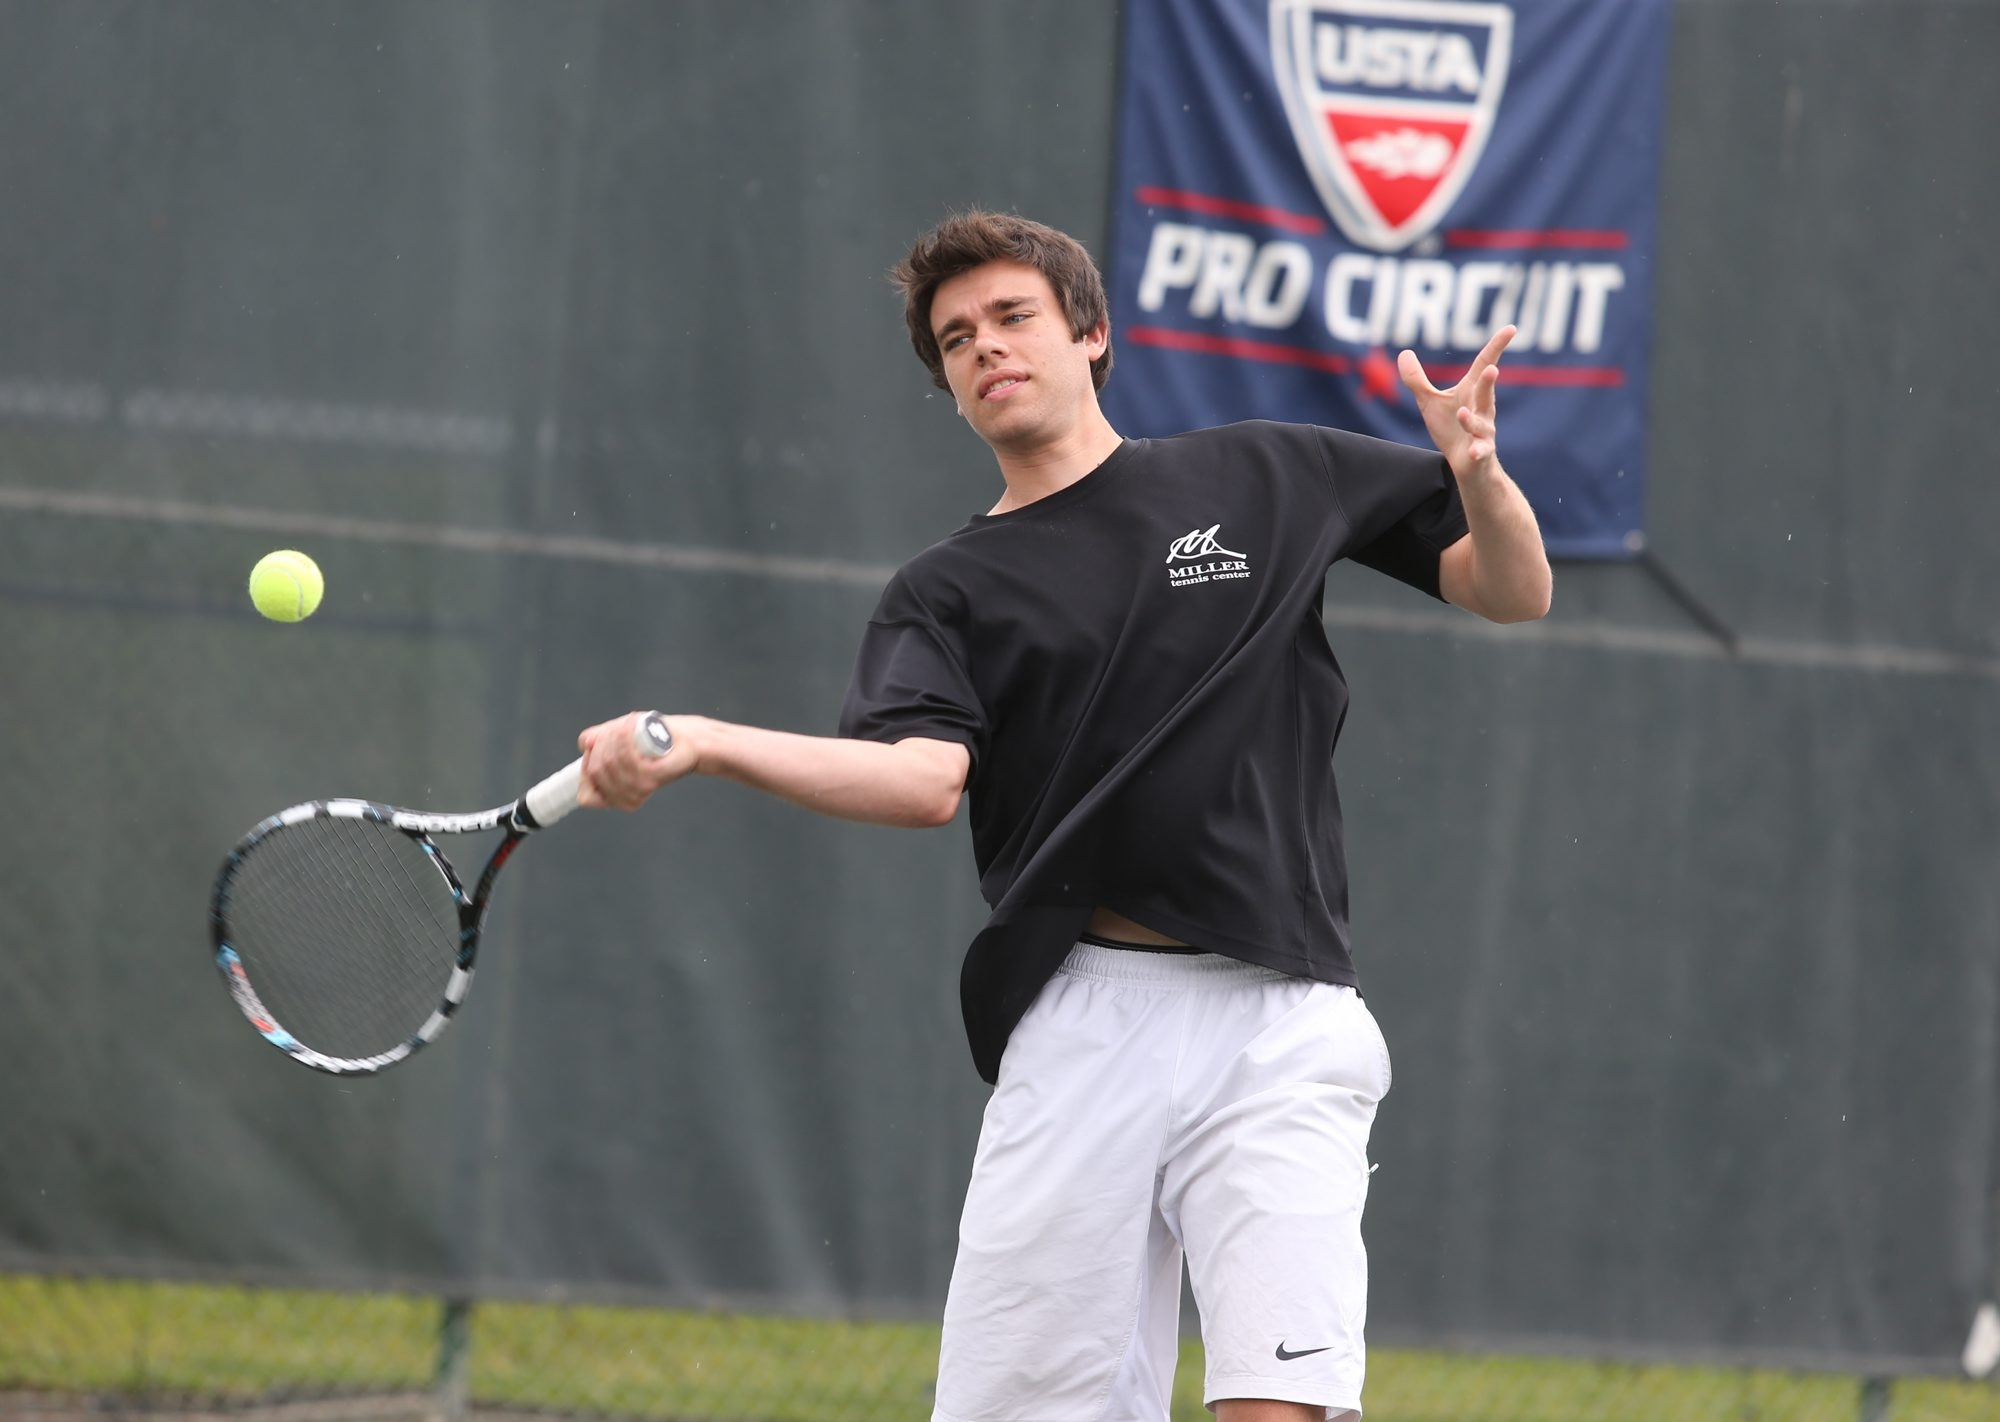 Tony Miller is a wild card singles entrant for the Sargent & Collins LLP Men's $10,000 Futures Tournament.